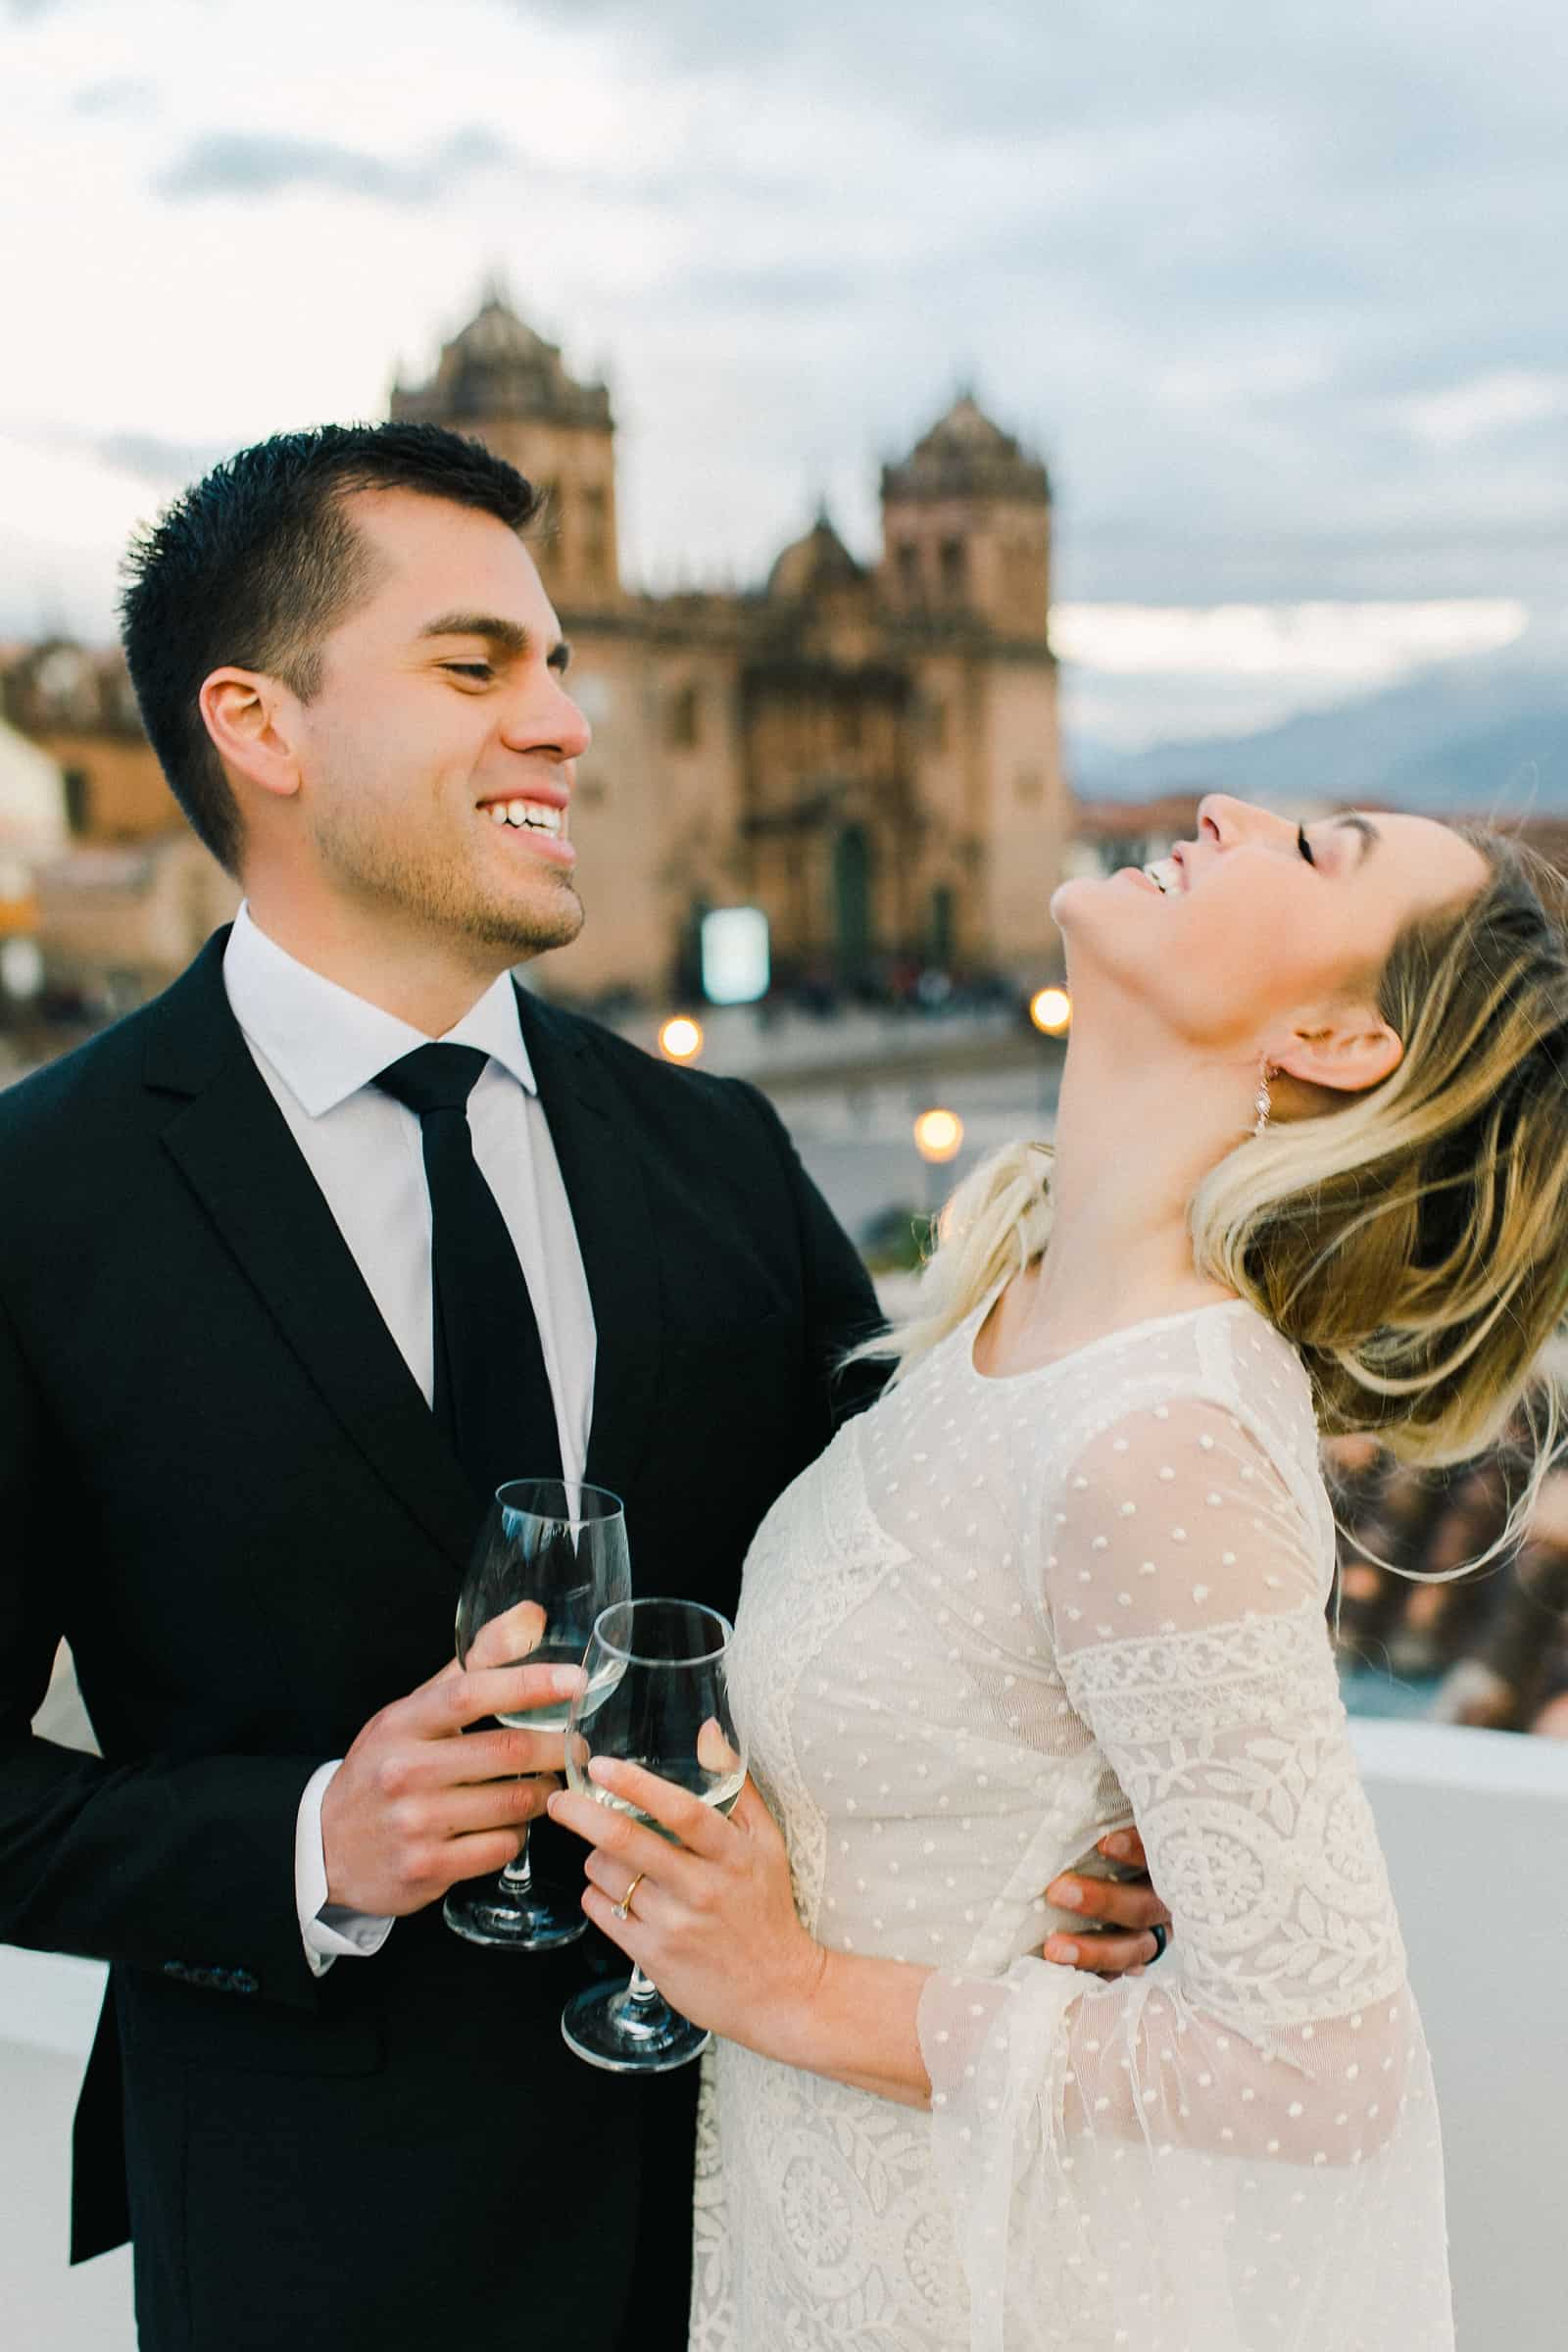 Cusco Peru Destination Wedding Inspiration, travel photography, bride and groom wedding dinner overlooking Cusco Cathedral , champagne toast